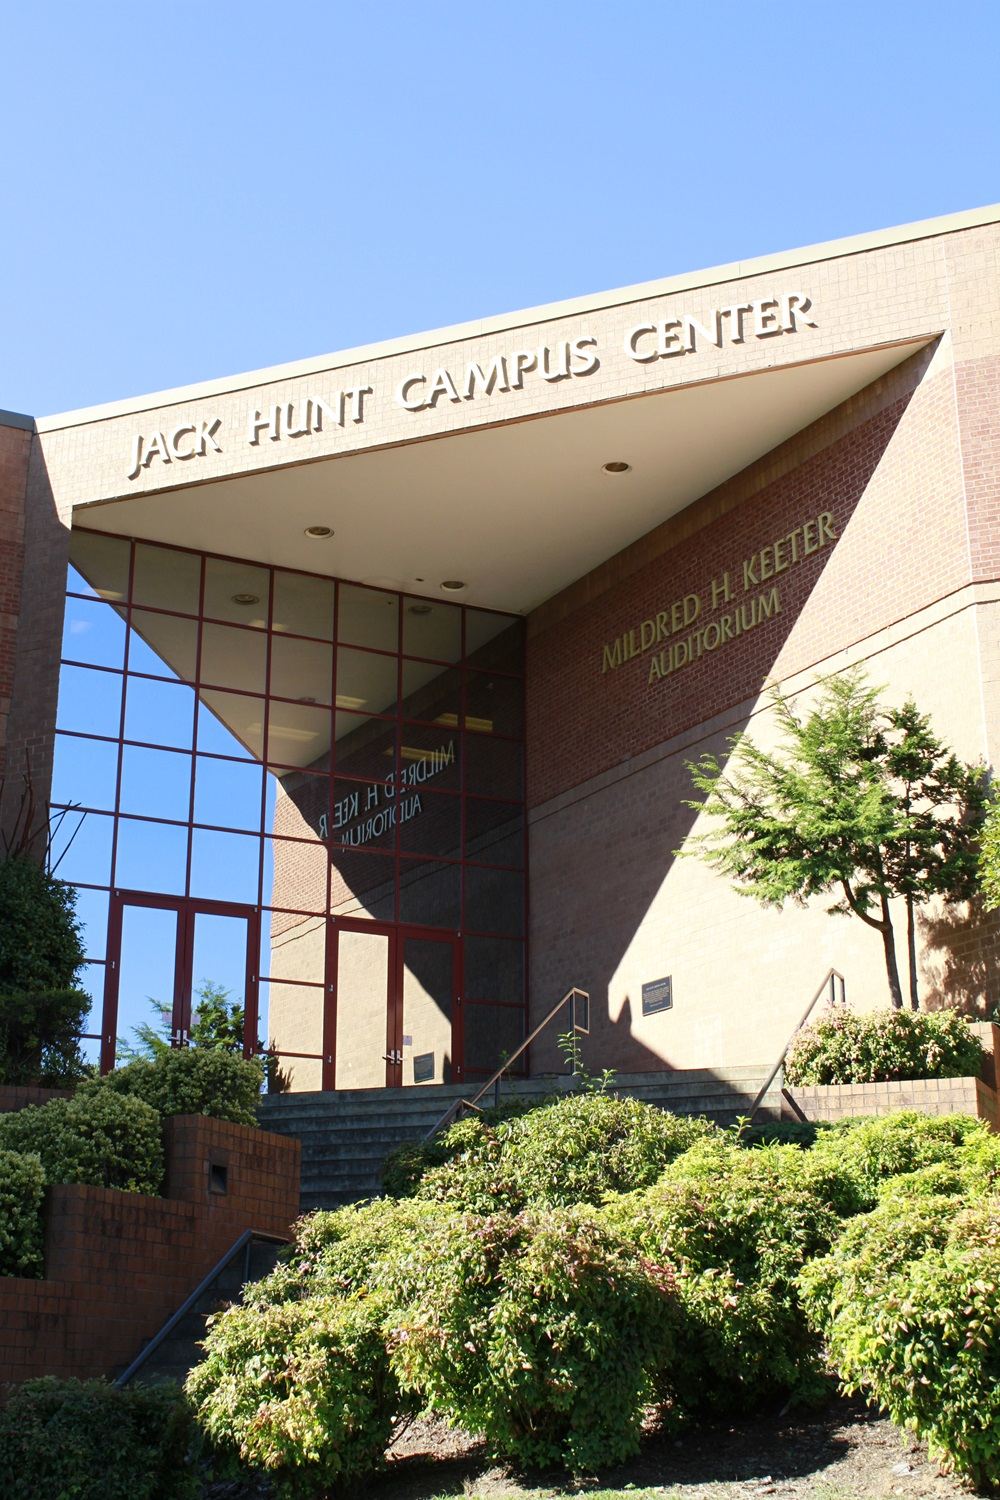 Jack Hunt Campus Center